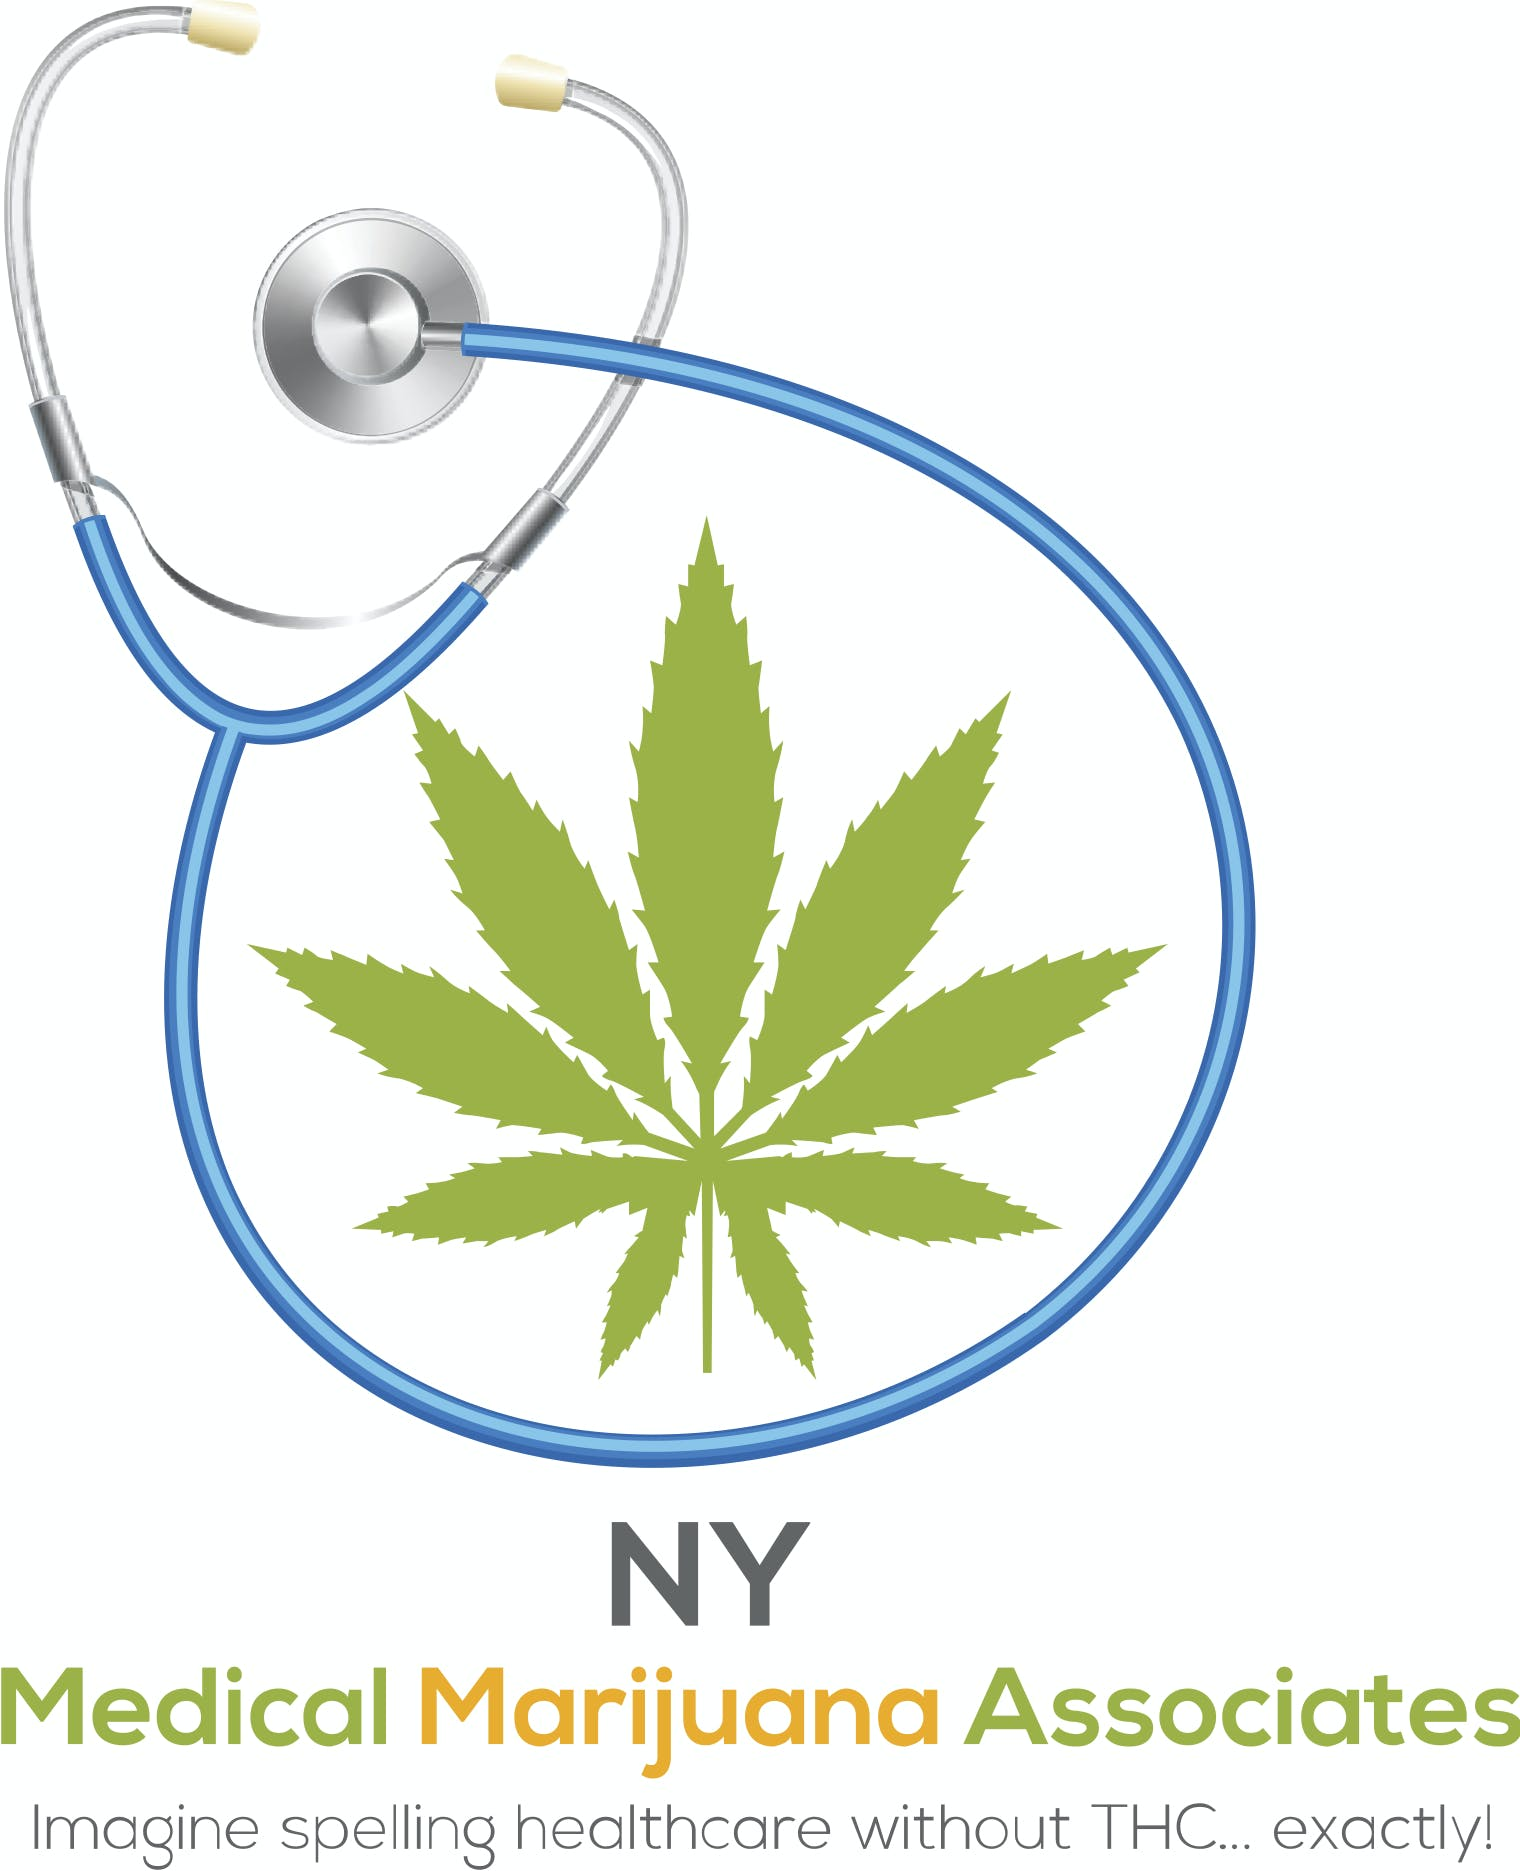 NY Medical Marijuana Associates